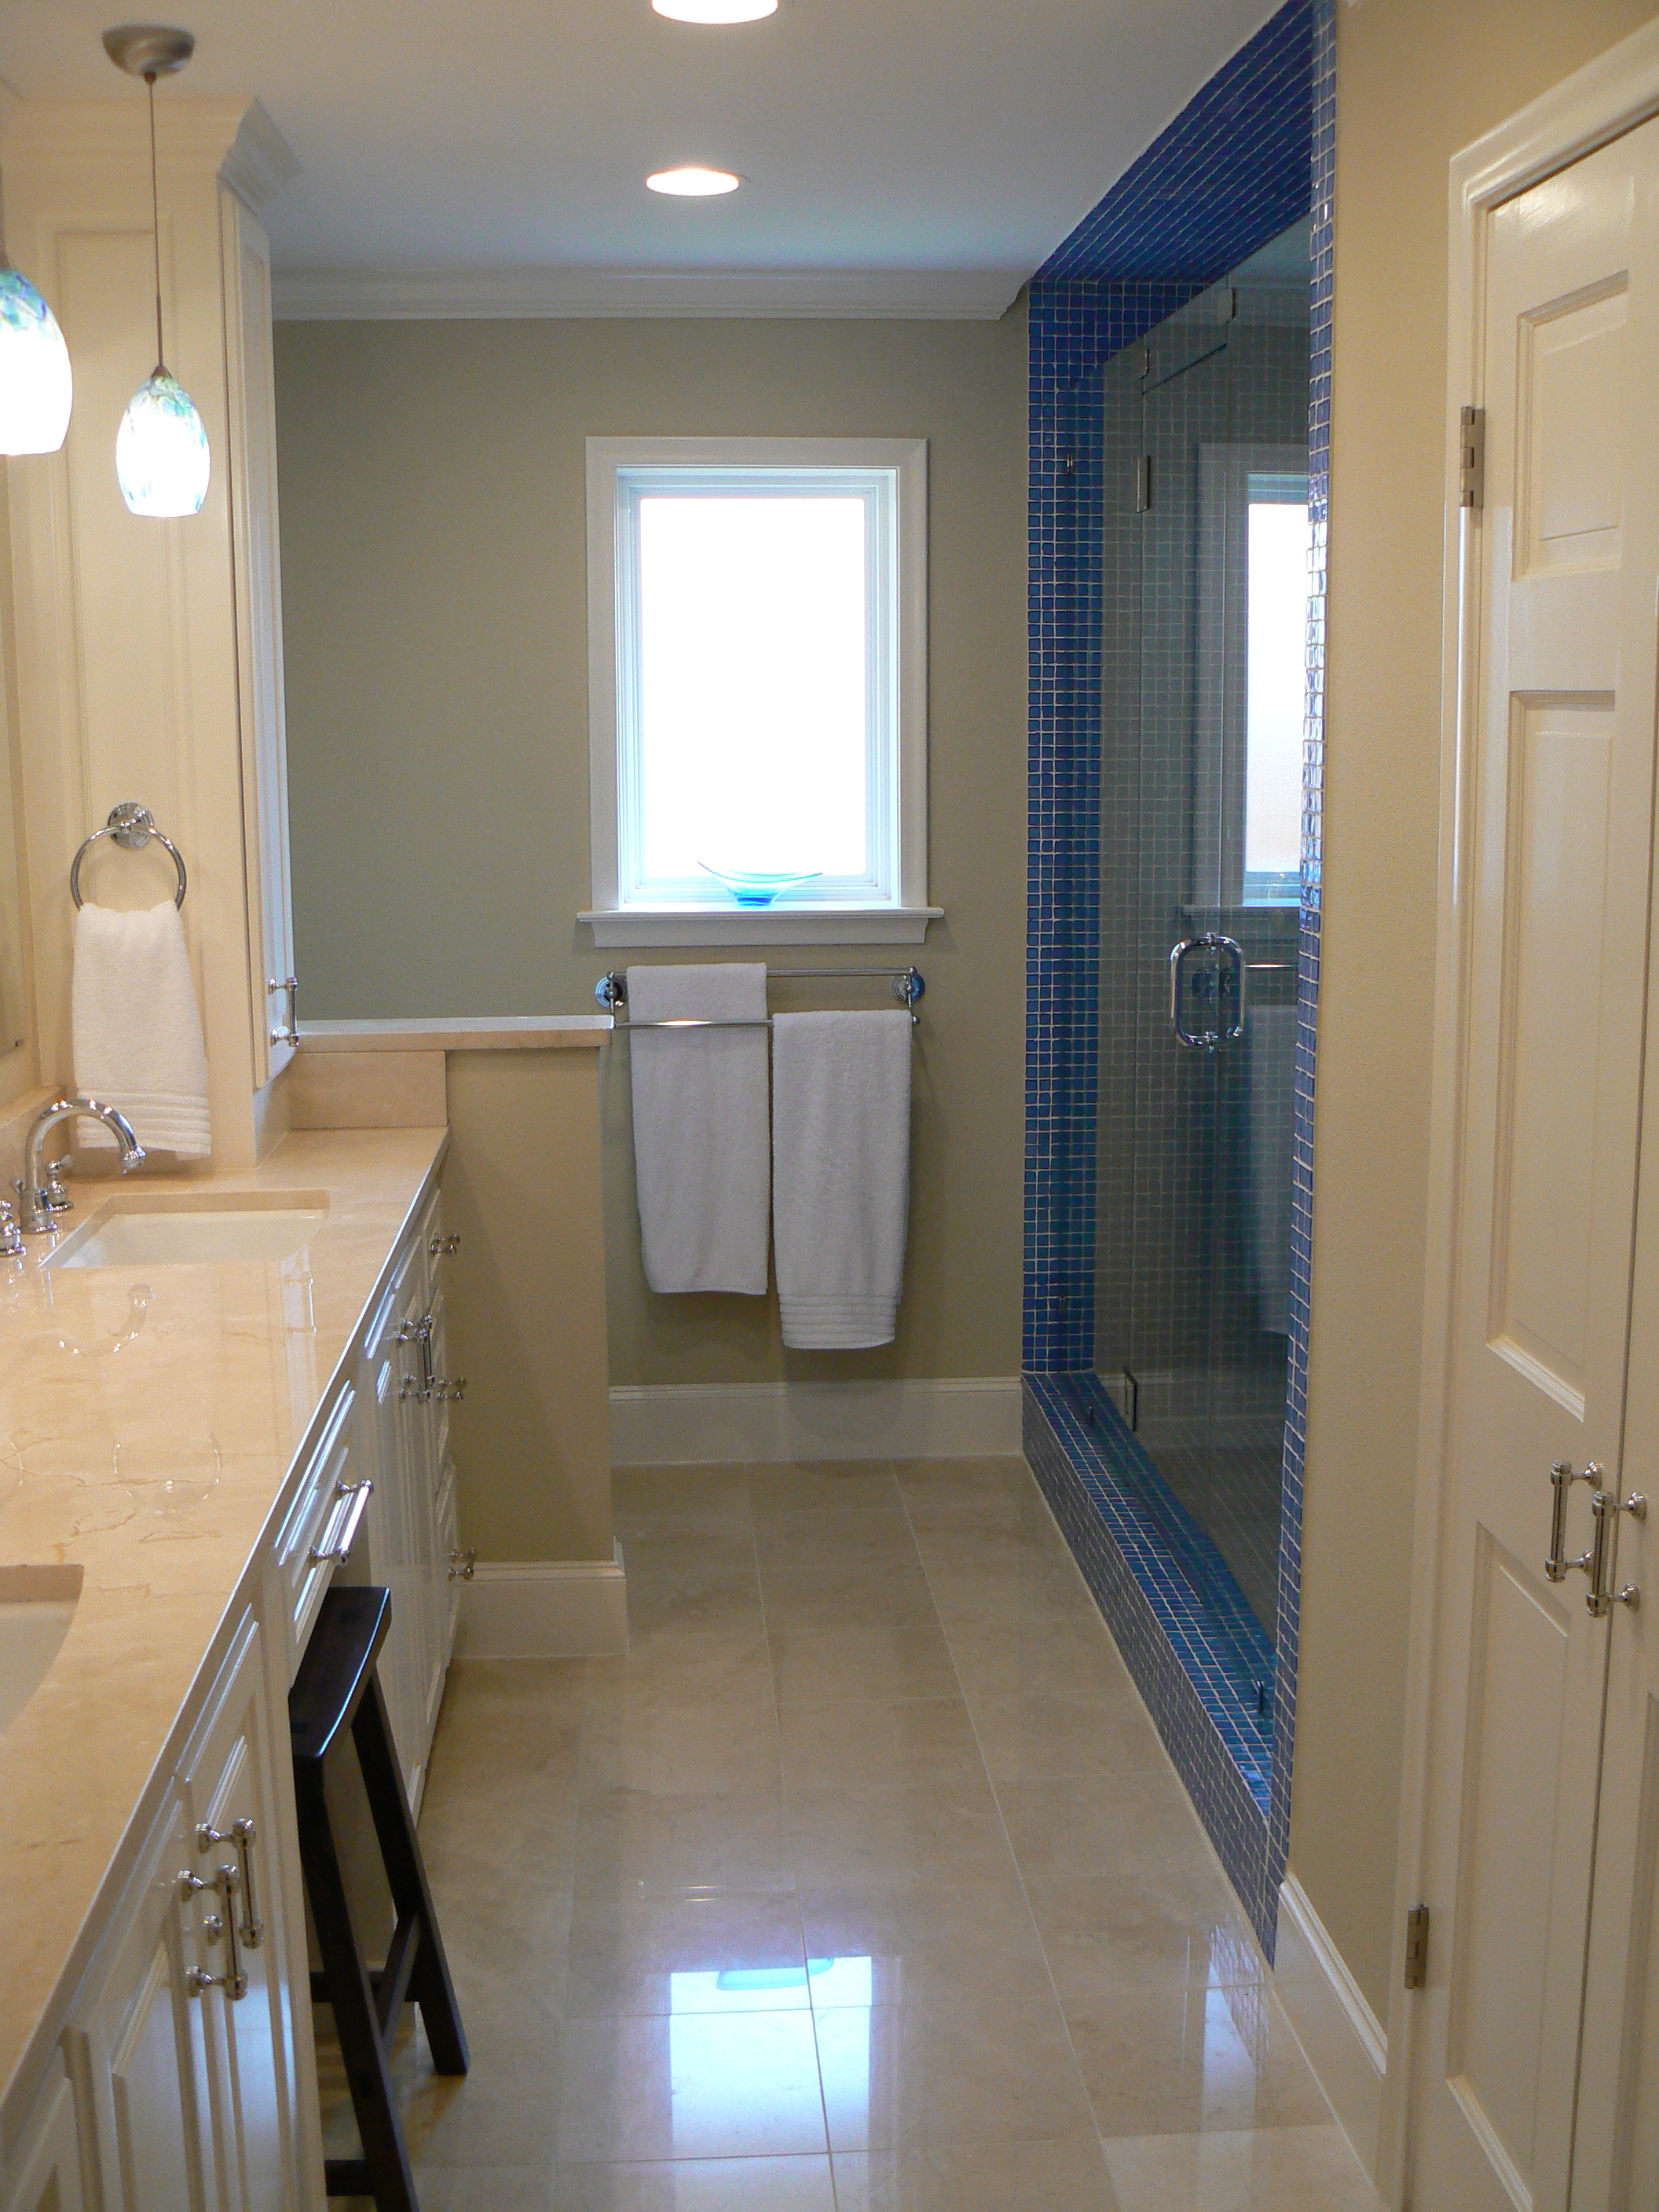 Home makeover before after photo gallery - Jack and jill bath ...